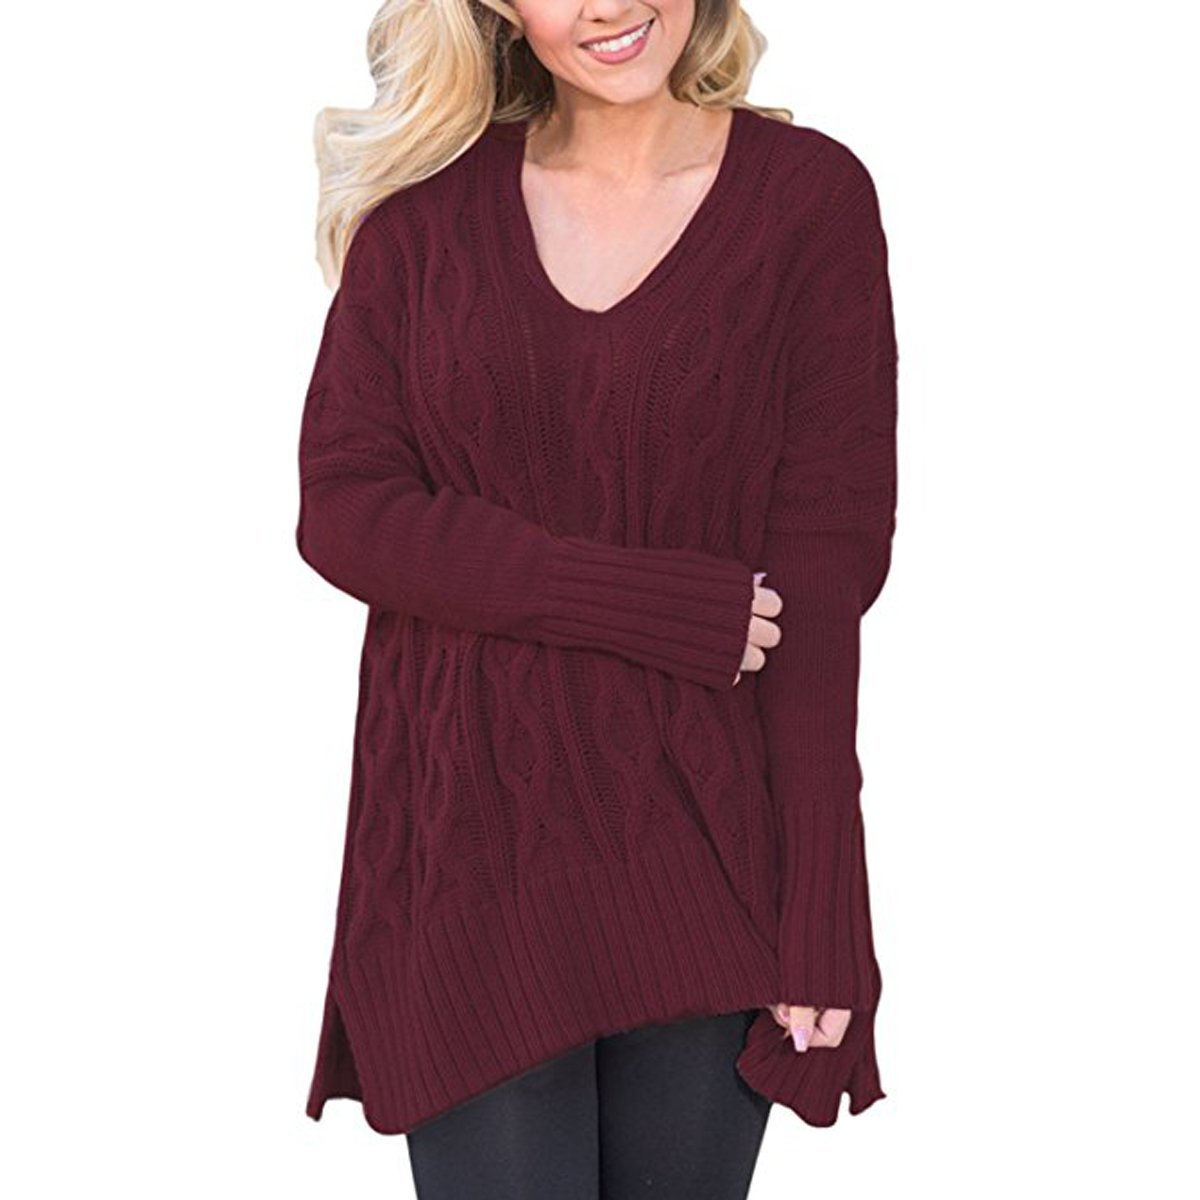 Ksenia Women Casual V Neck Oversized Knitted Baggy Loose Fit Knit Sweater Pullover Top (Wine Red, XXL)